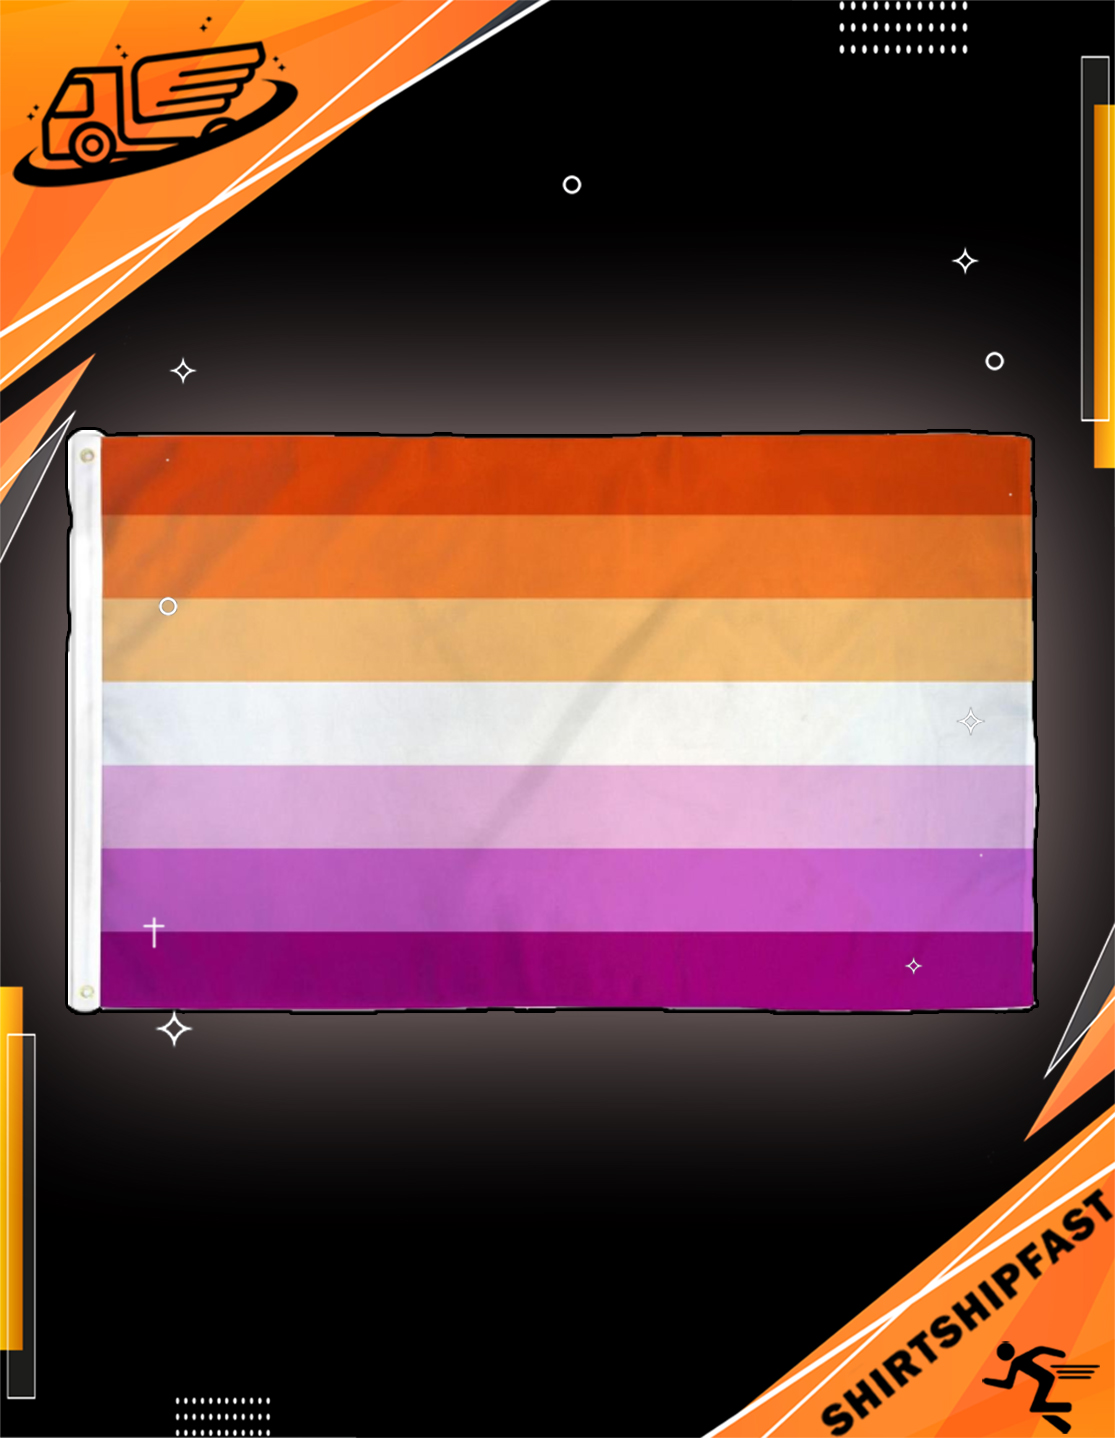 Lesbian sunset flag - Picture 3